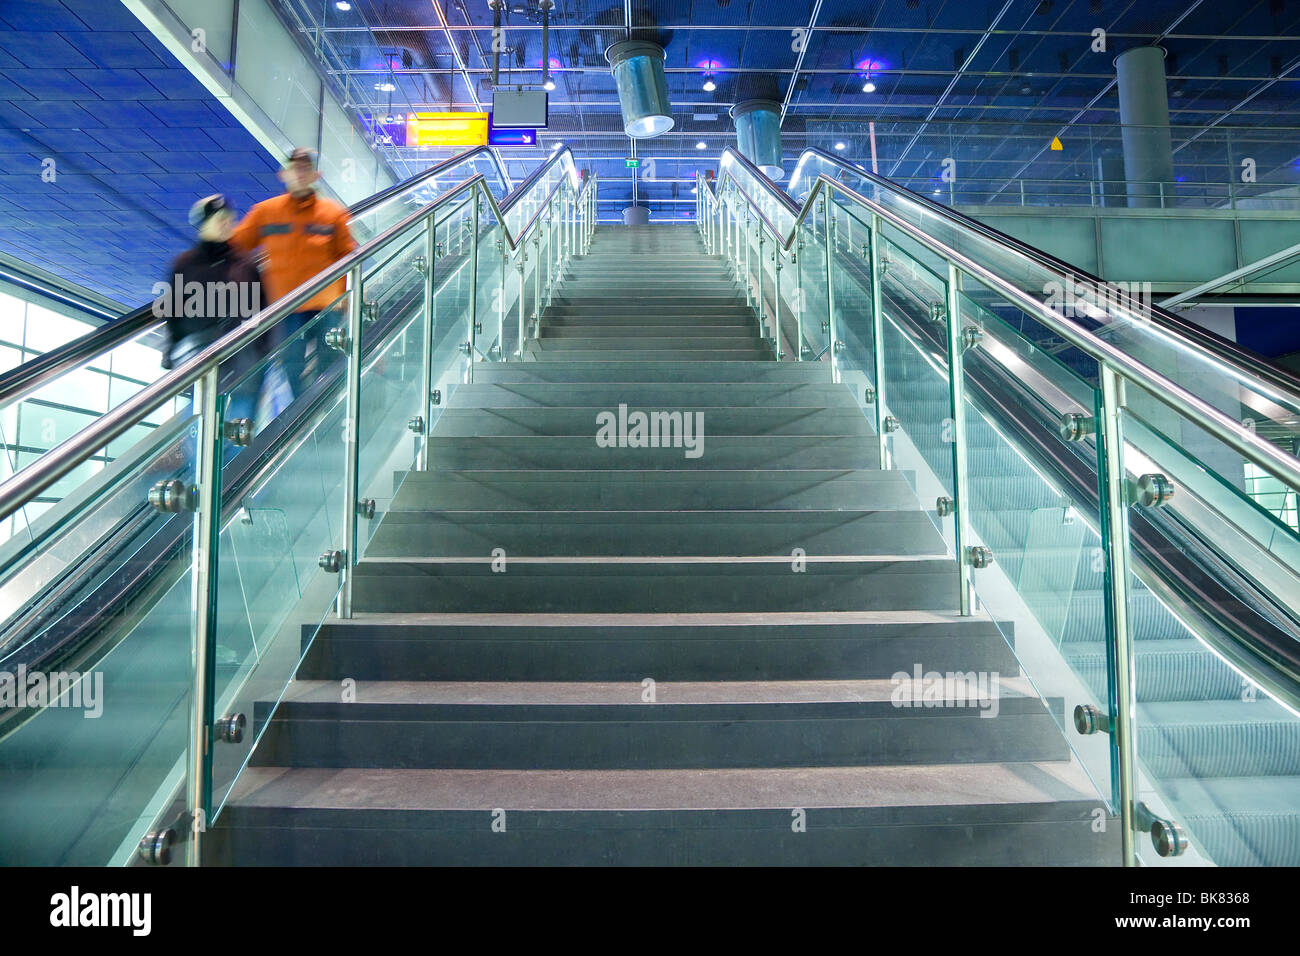 Europe, Germany, Berlin, modern train station - escalator and stairs leading to the platform - Stock Image